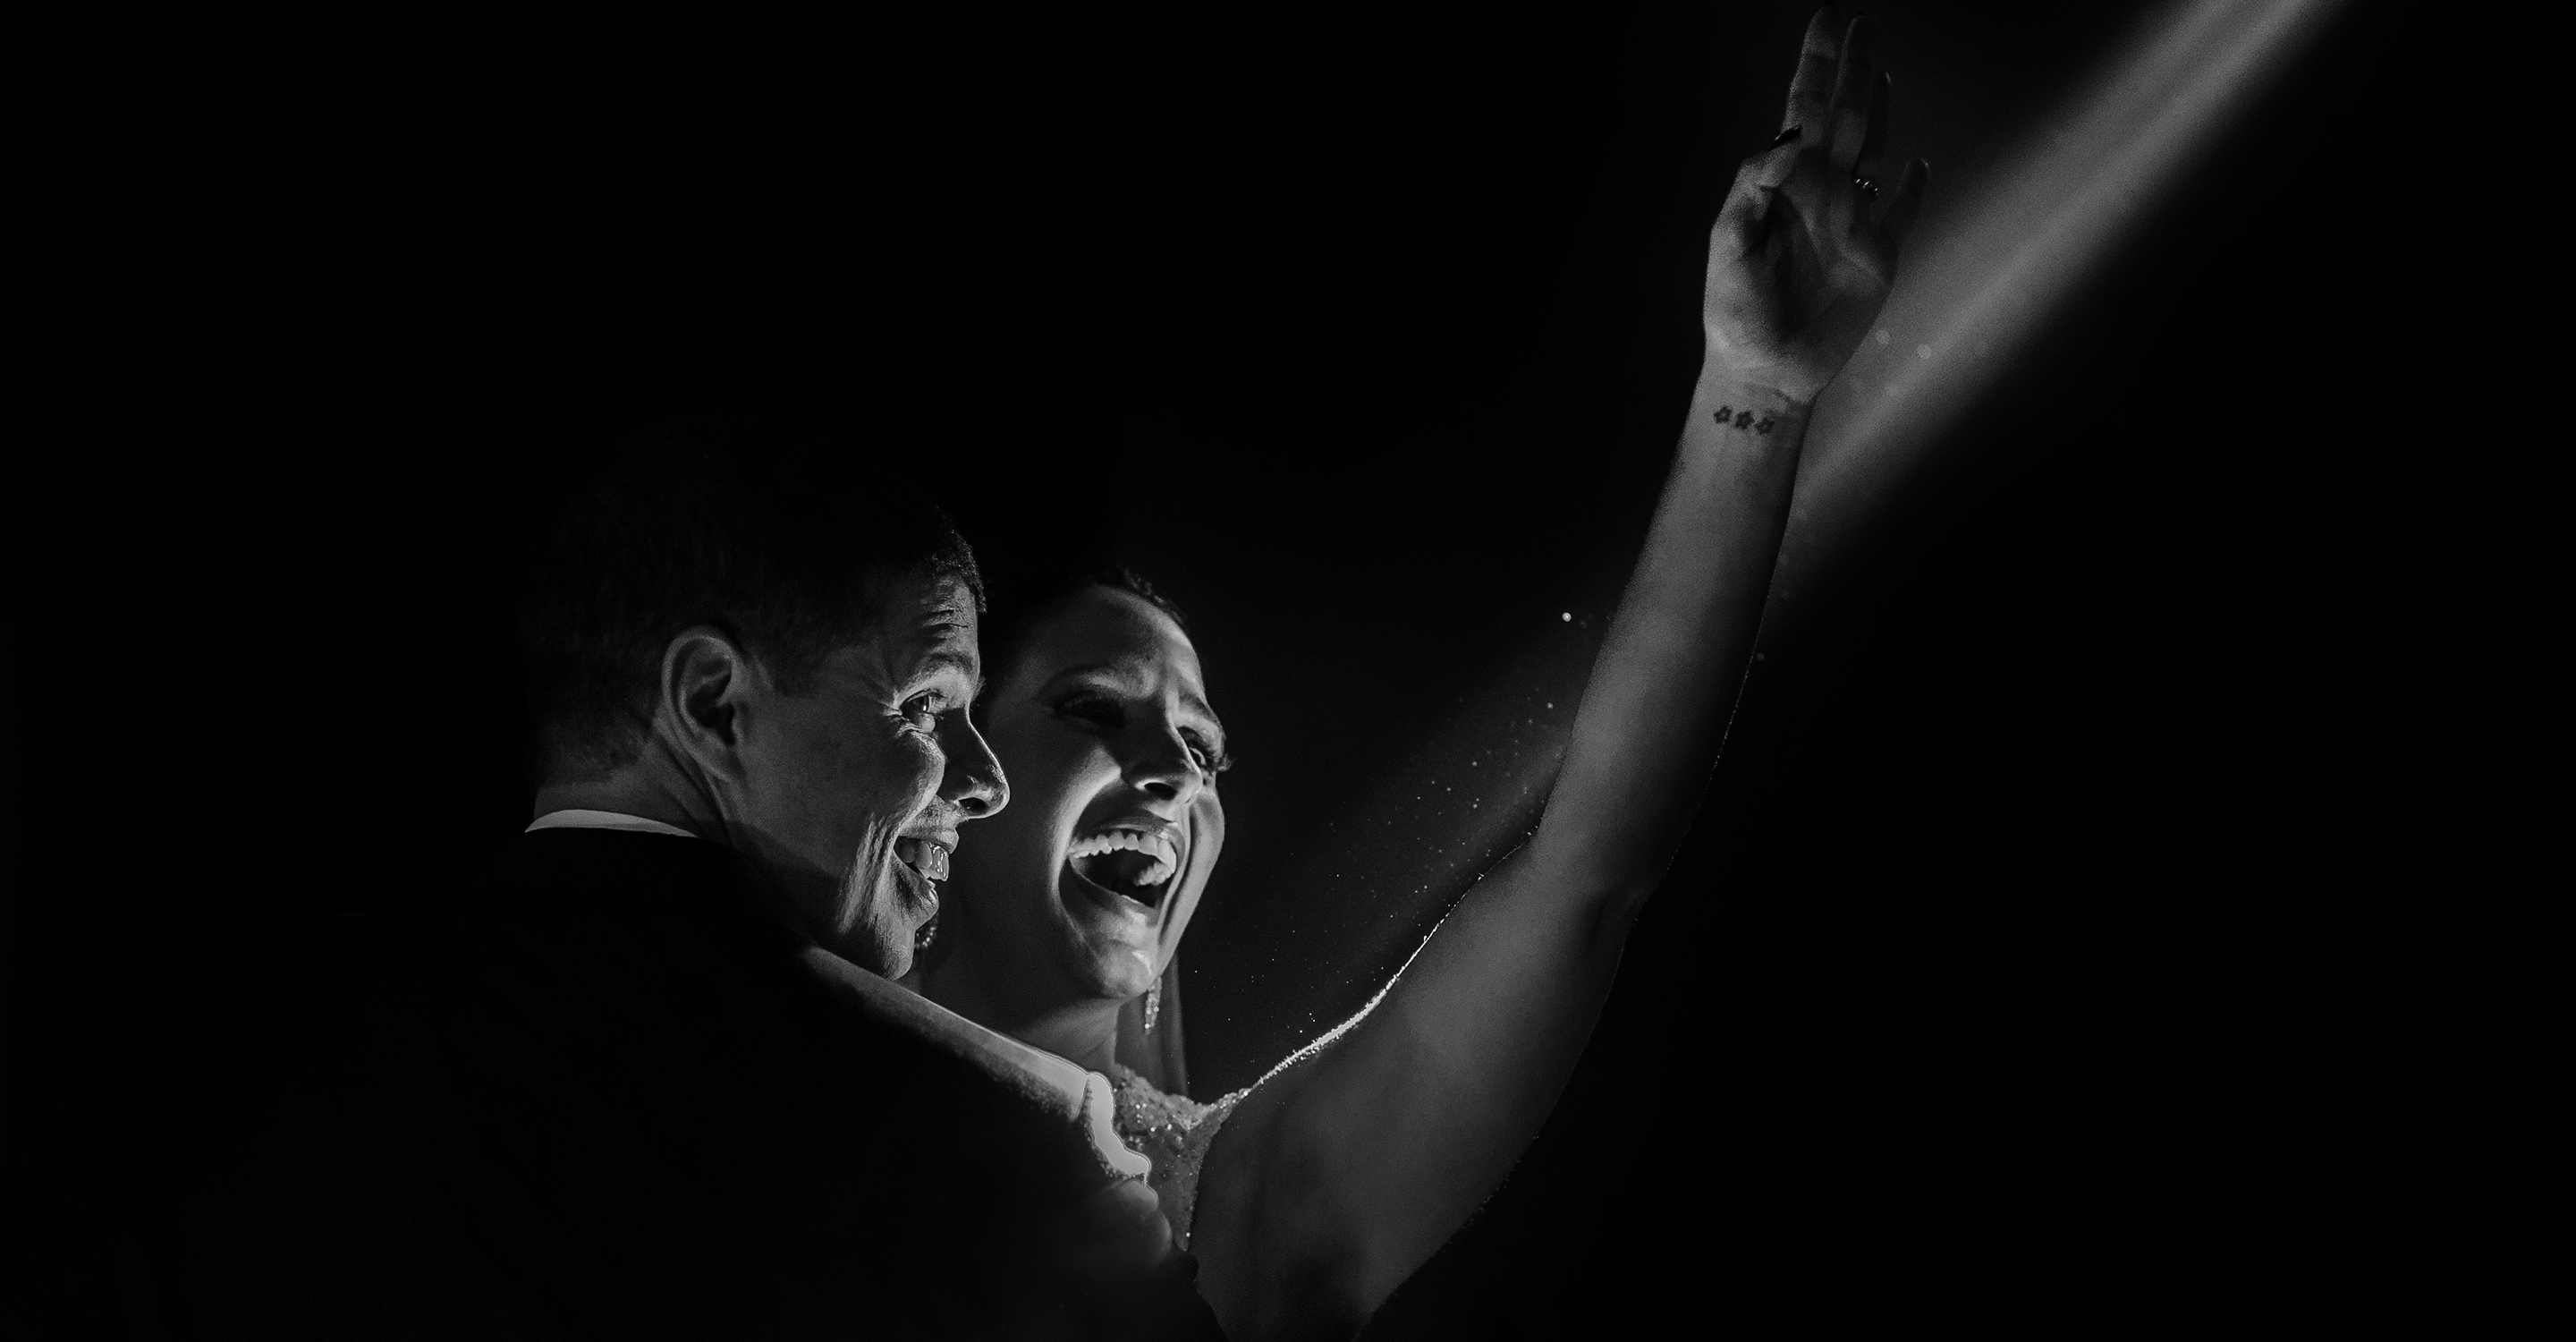 Bride and groom are touched by light in a joyful moment